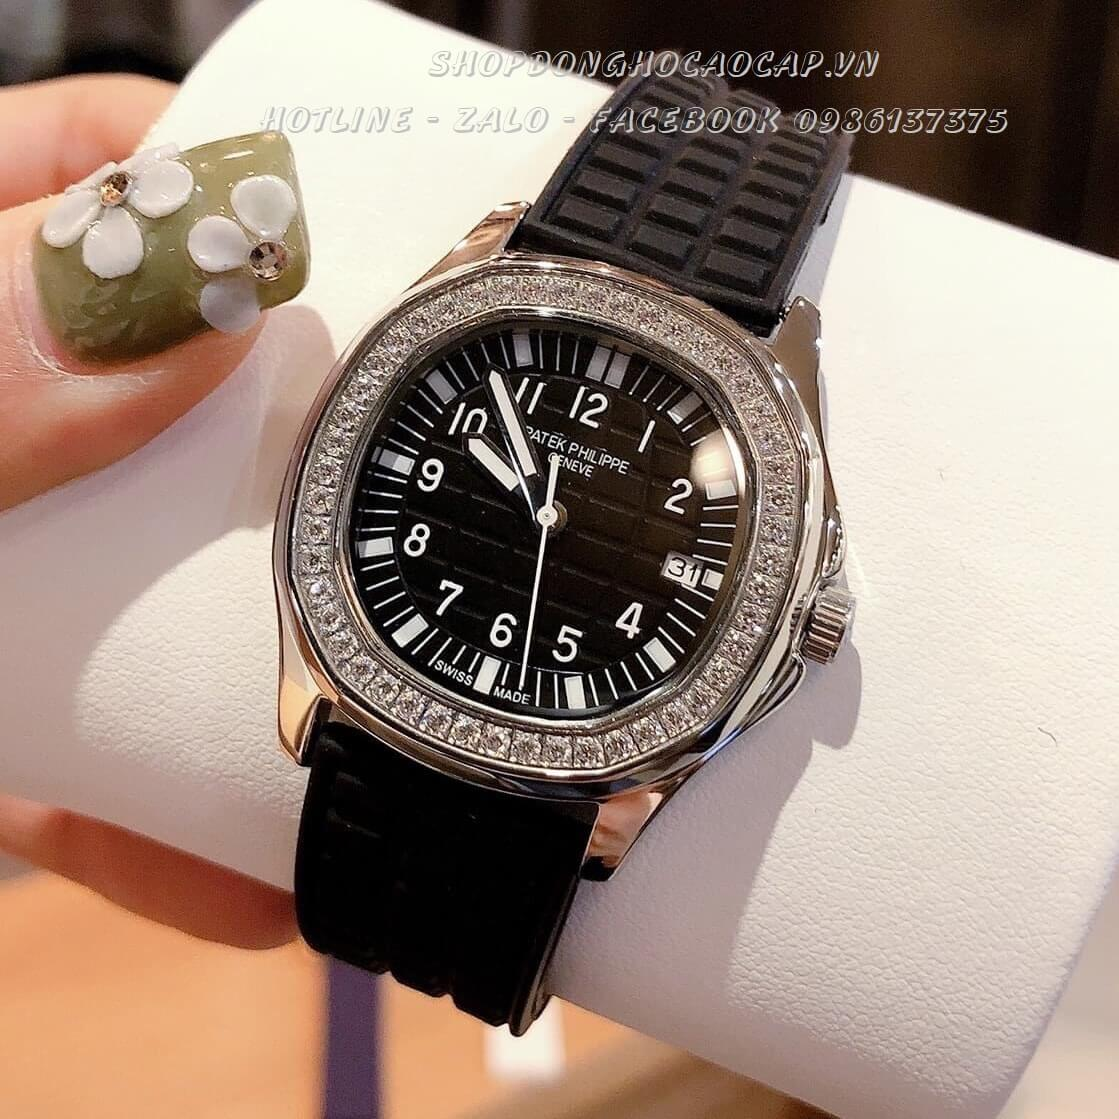 Đồng Hồ Patek Philippe Nữ Dây Silicon Đen Silver 35mm